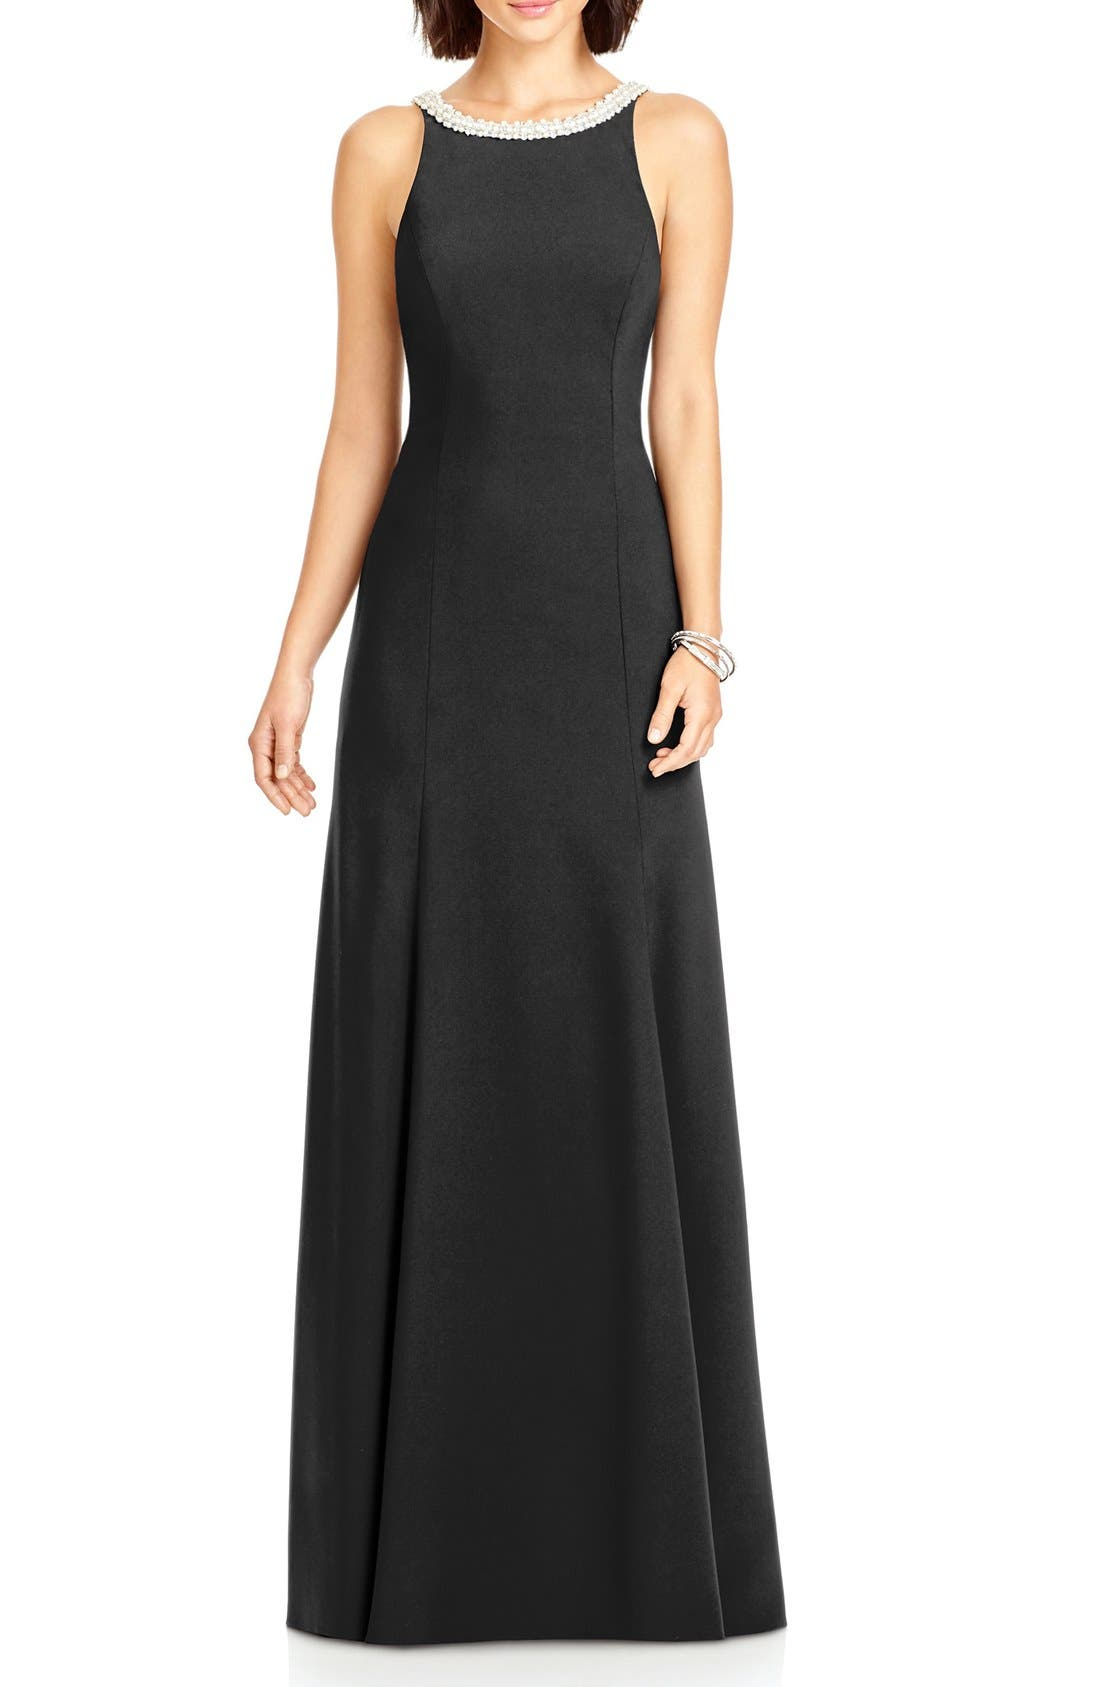 Women's Dresses | NordstromShop Top Brands · Get Nordstrom Rewards · Alterations AvailableStyles: Dresses, Coats, Jackets, Pants, Accessories, Swimwear, Clothing.